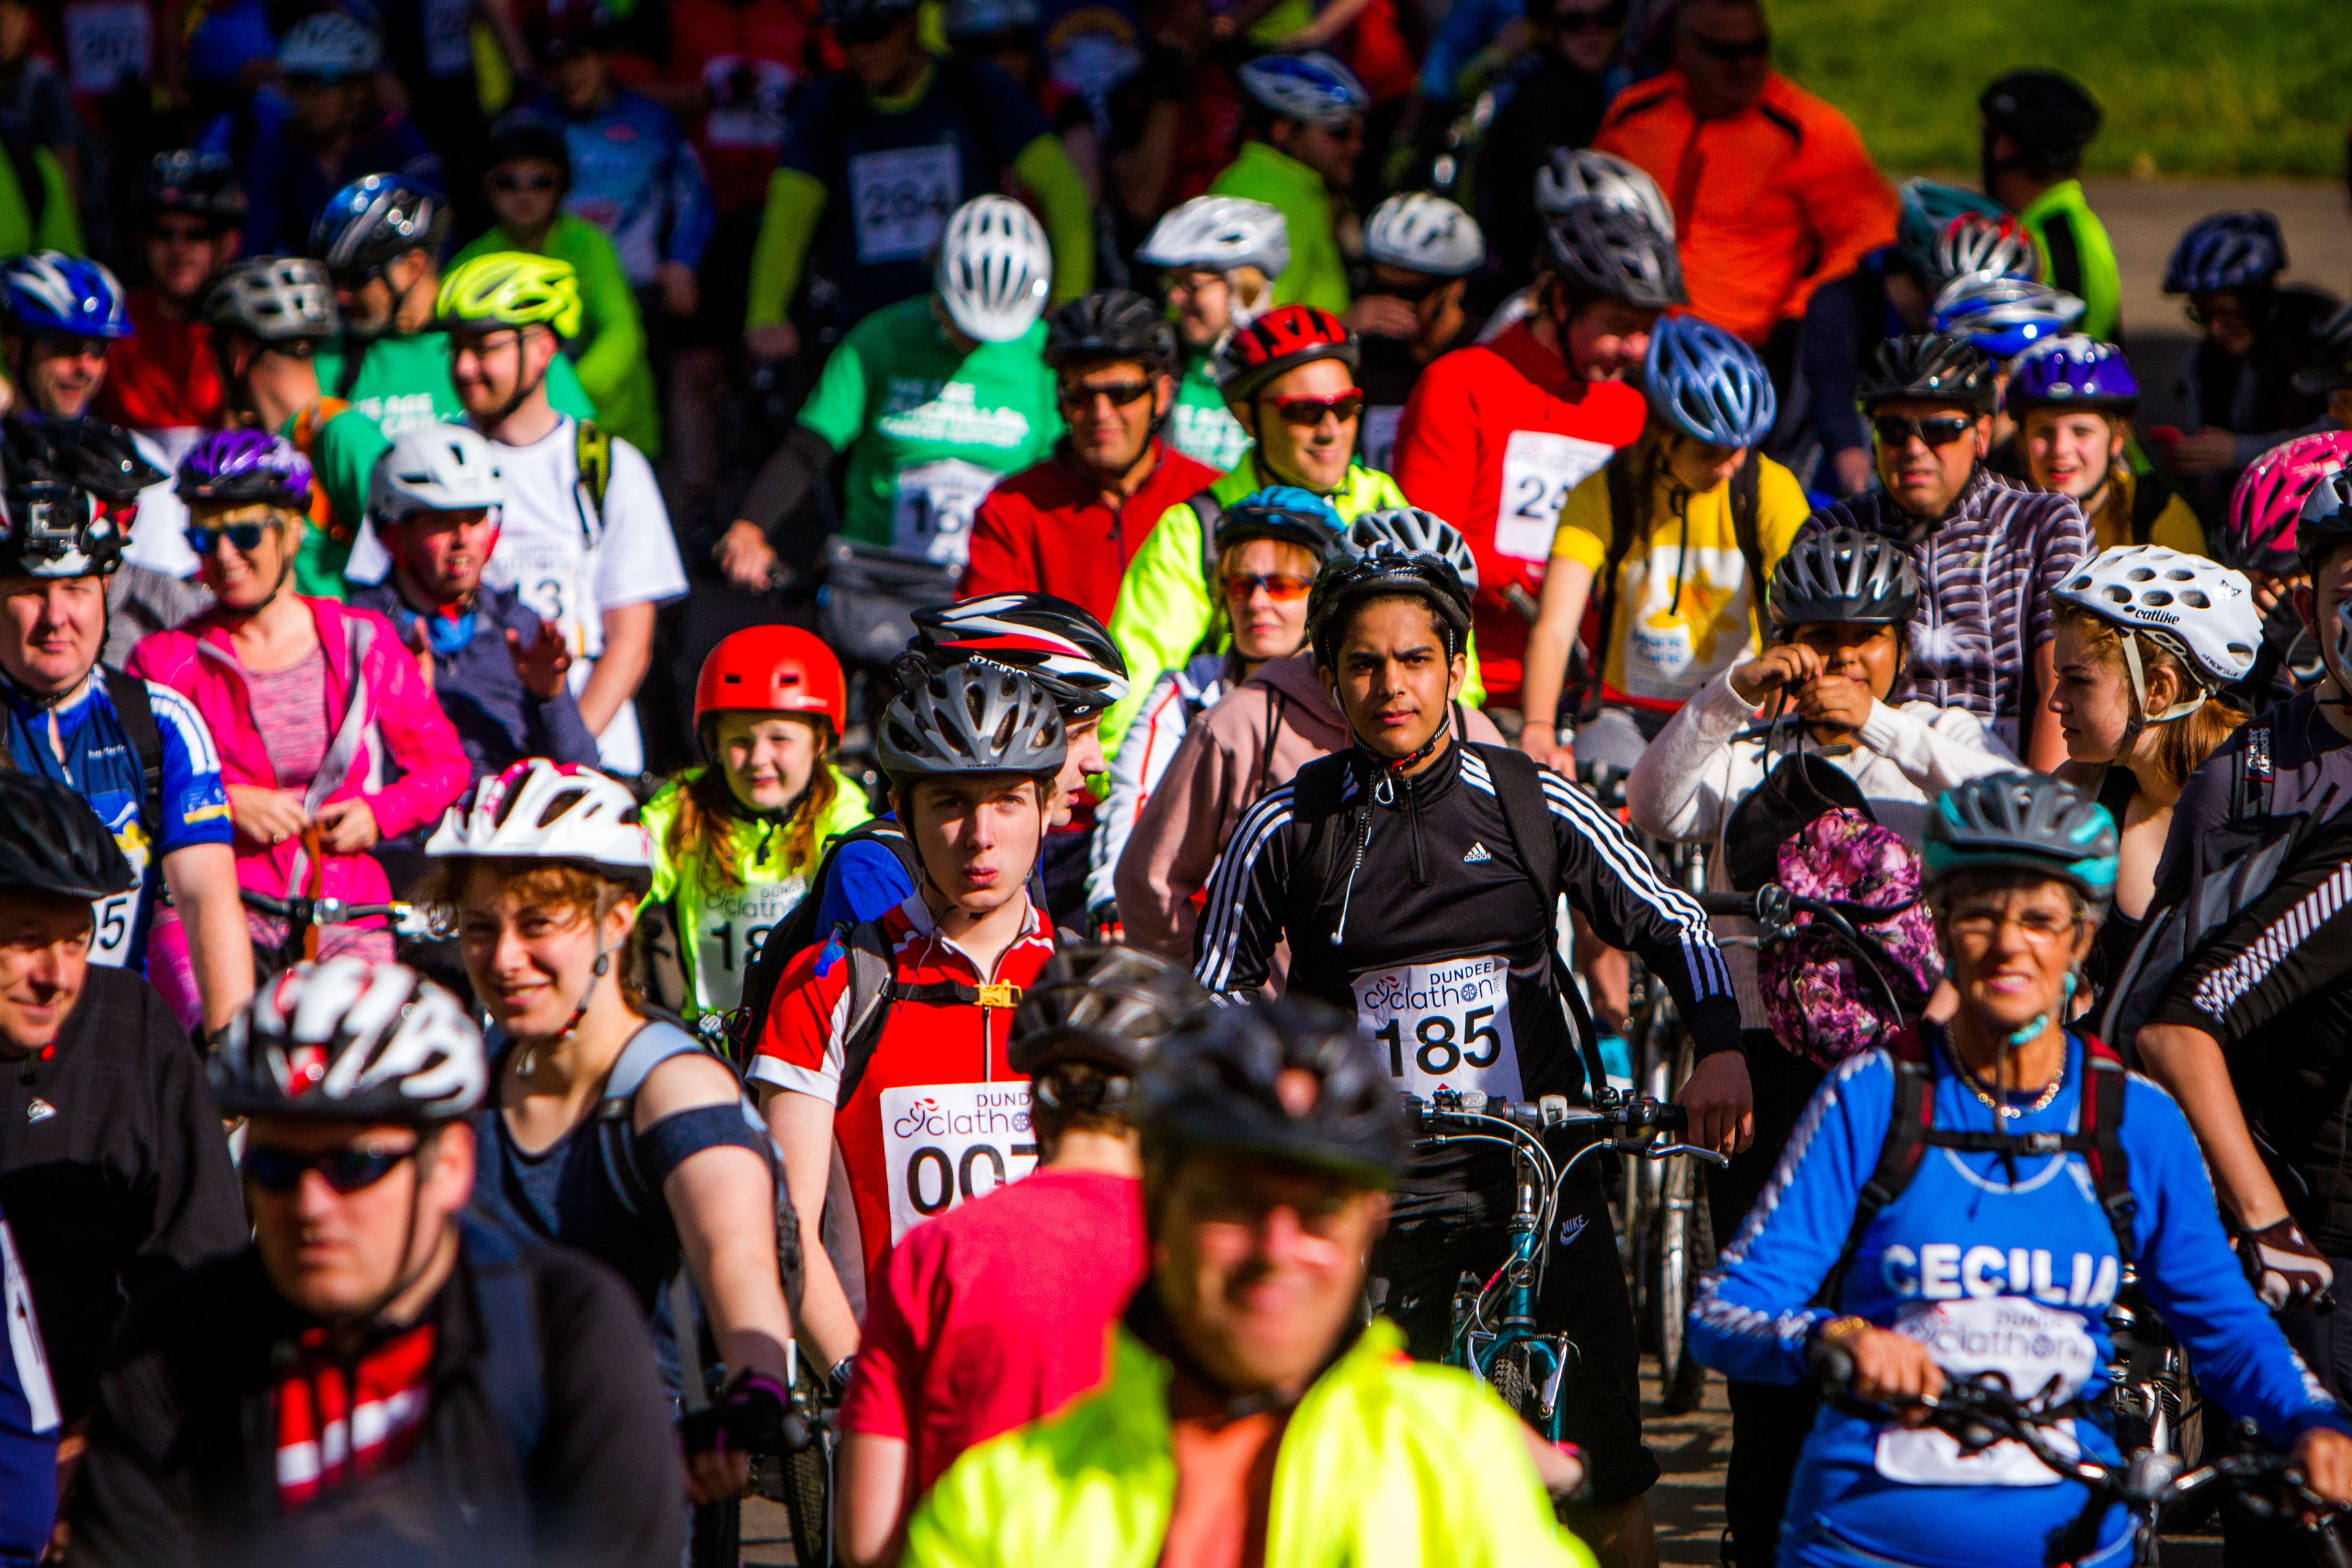 Cyclists prepare to set off at Camperdown Park.